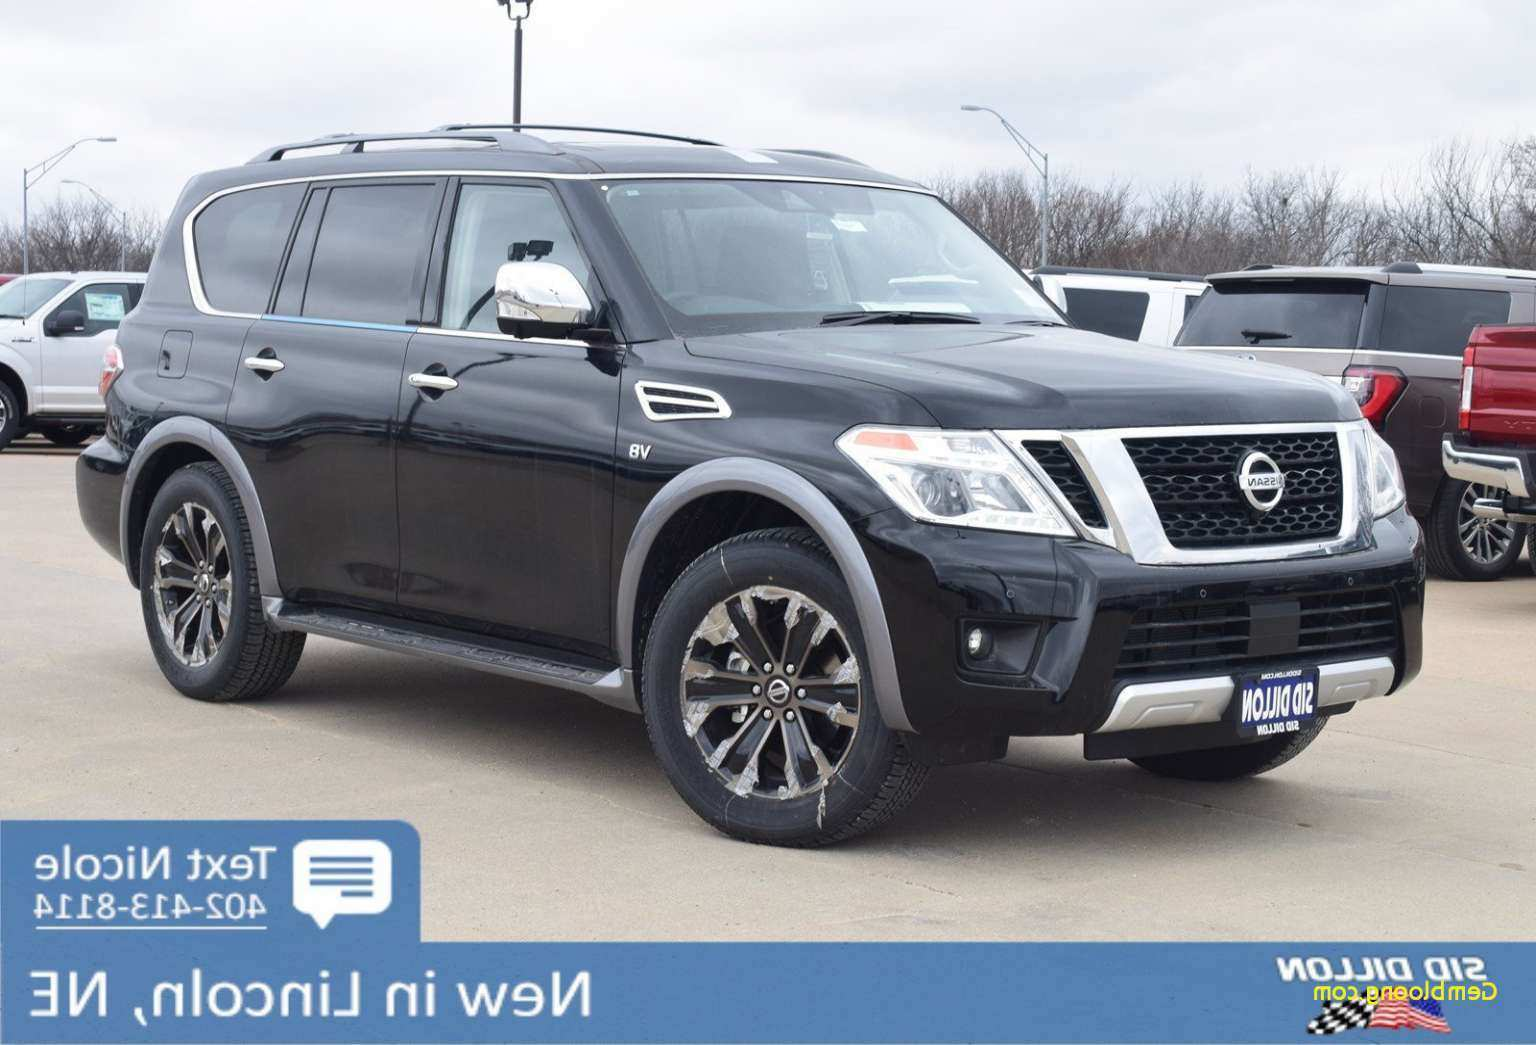 11 New New Nissan Patrol 2020 Overview for New Nissan Patrol 2020